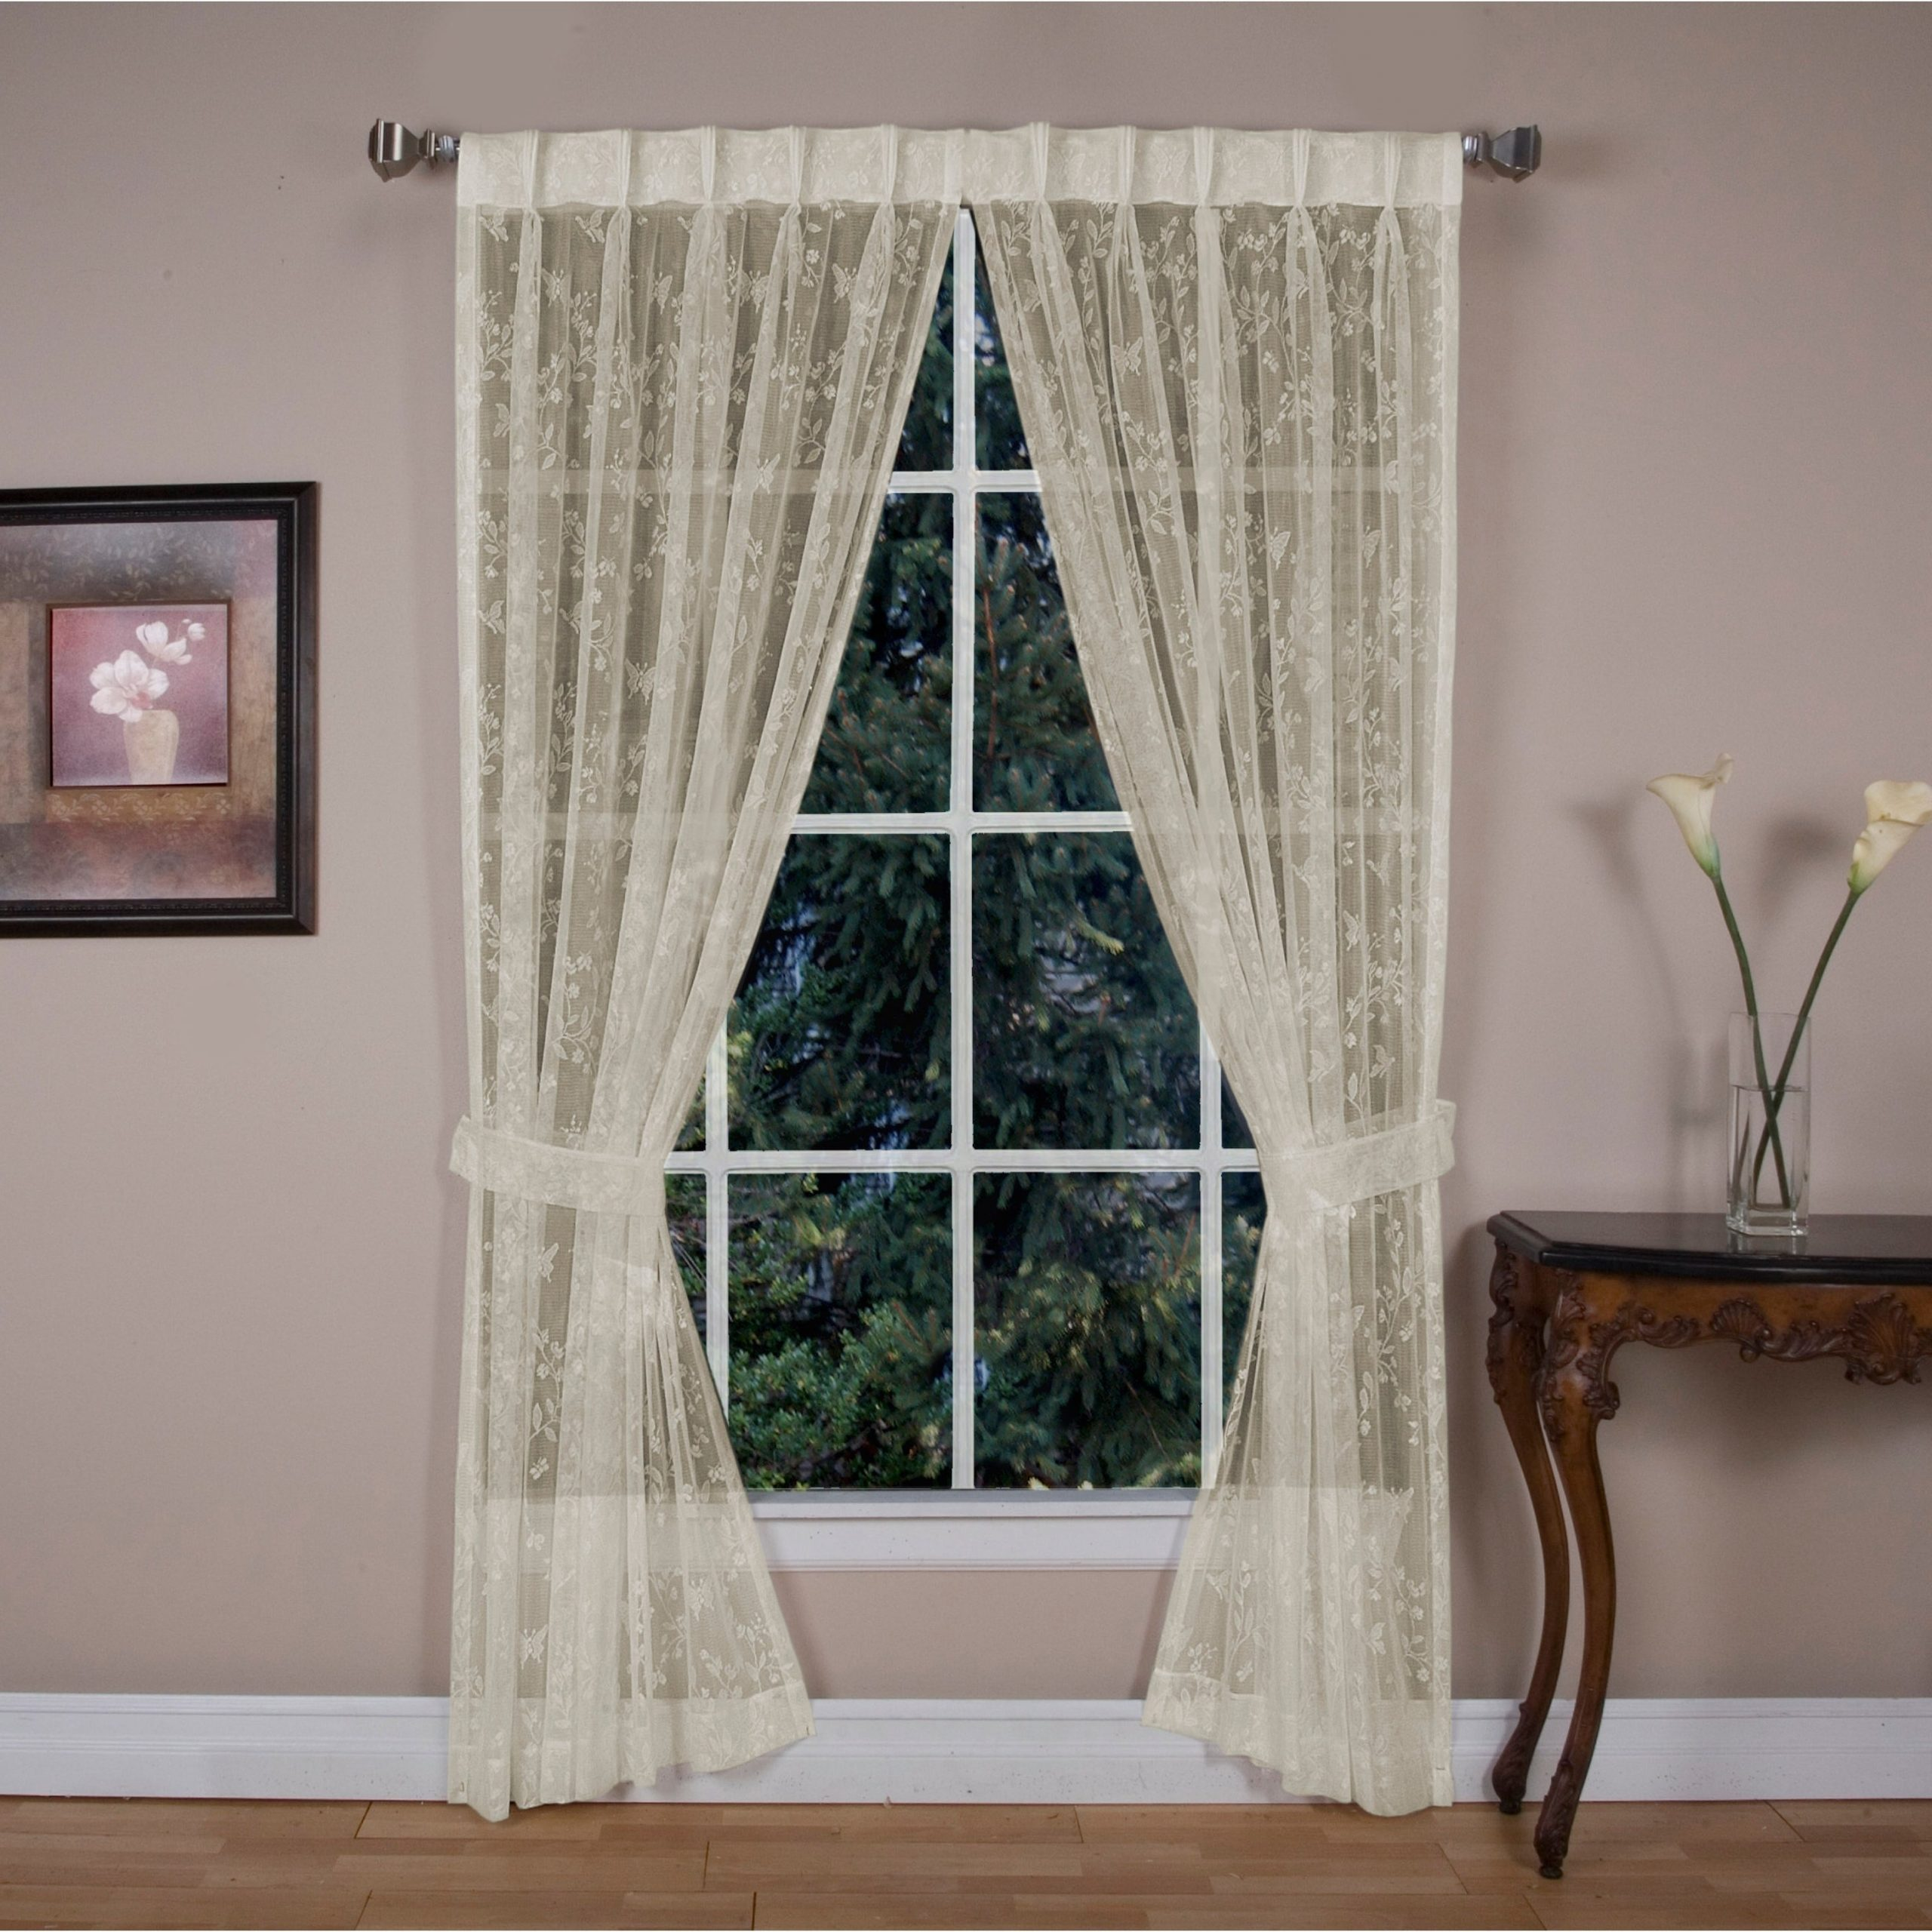 Double Pinch Pleat Top Curtain Panel Pairs Pertaining To Fashionable Isabella Lace Pinch Pleated Top W/back Tabs Curtain Panel Pair (View 17 of 20)